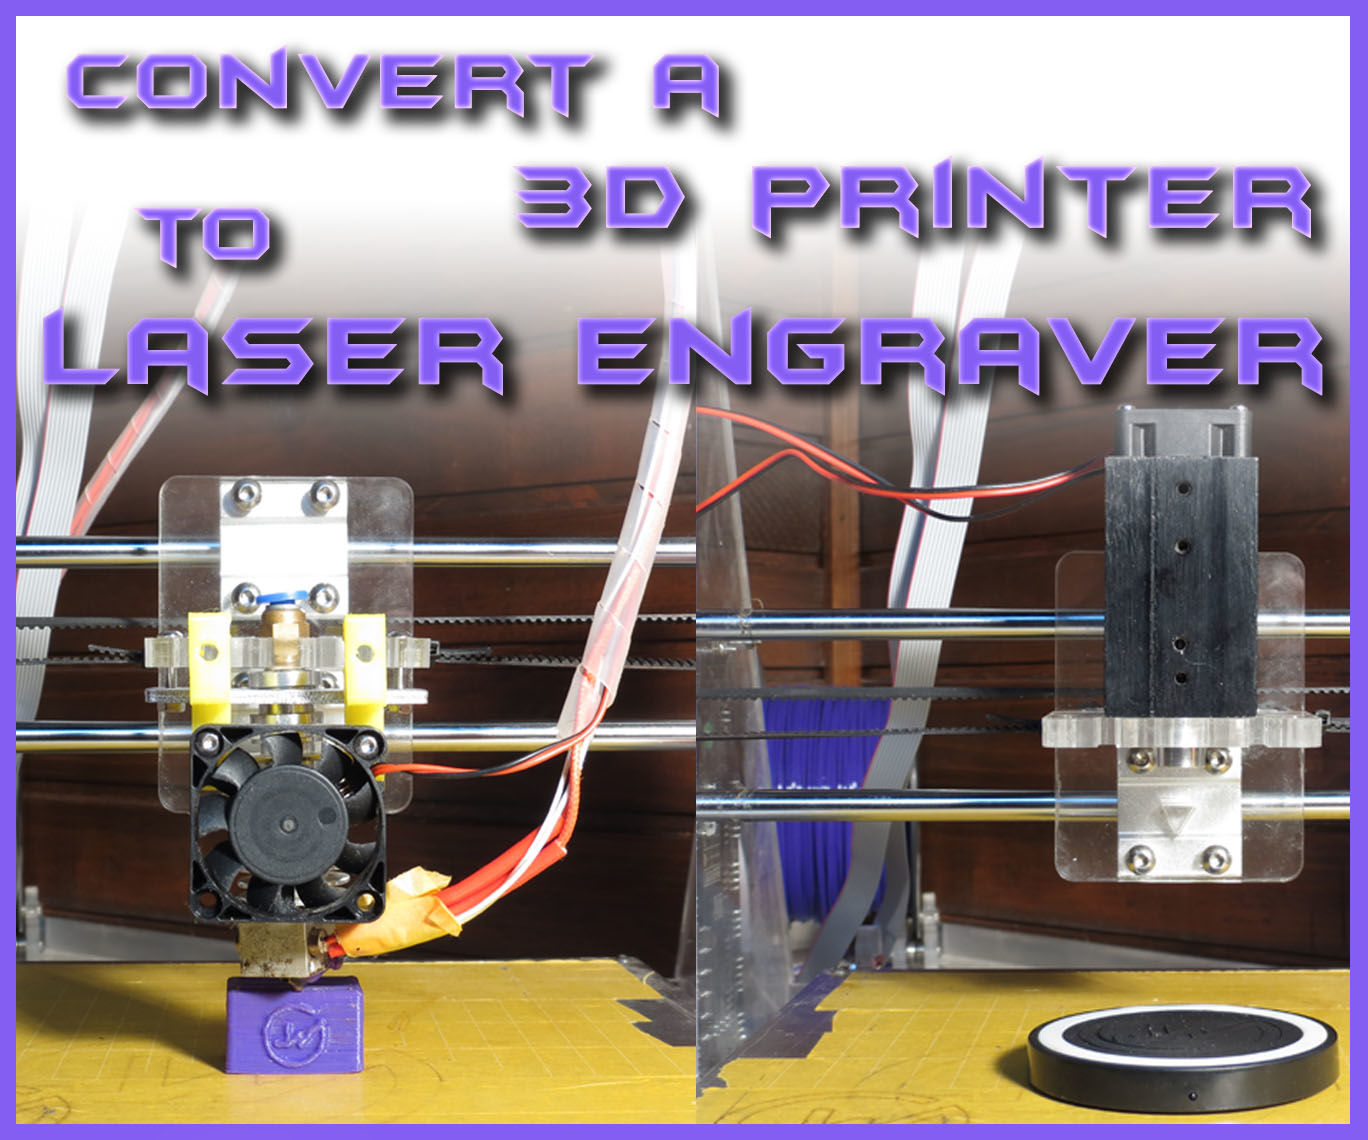 hight resolution of convert a 3d printer to laser engraver under 40 5 steps with pictures